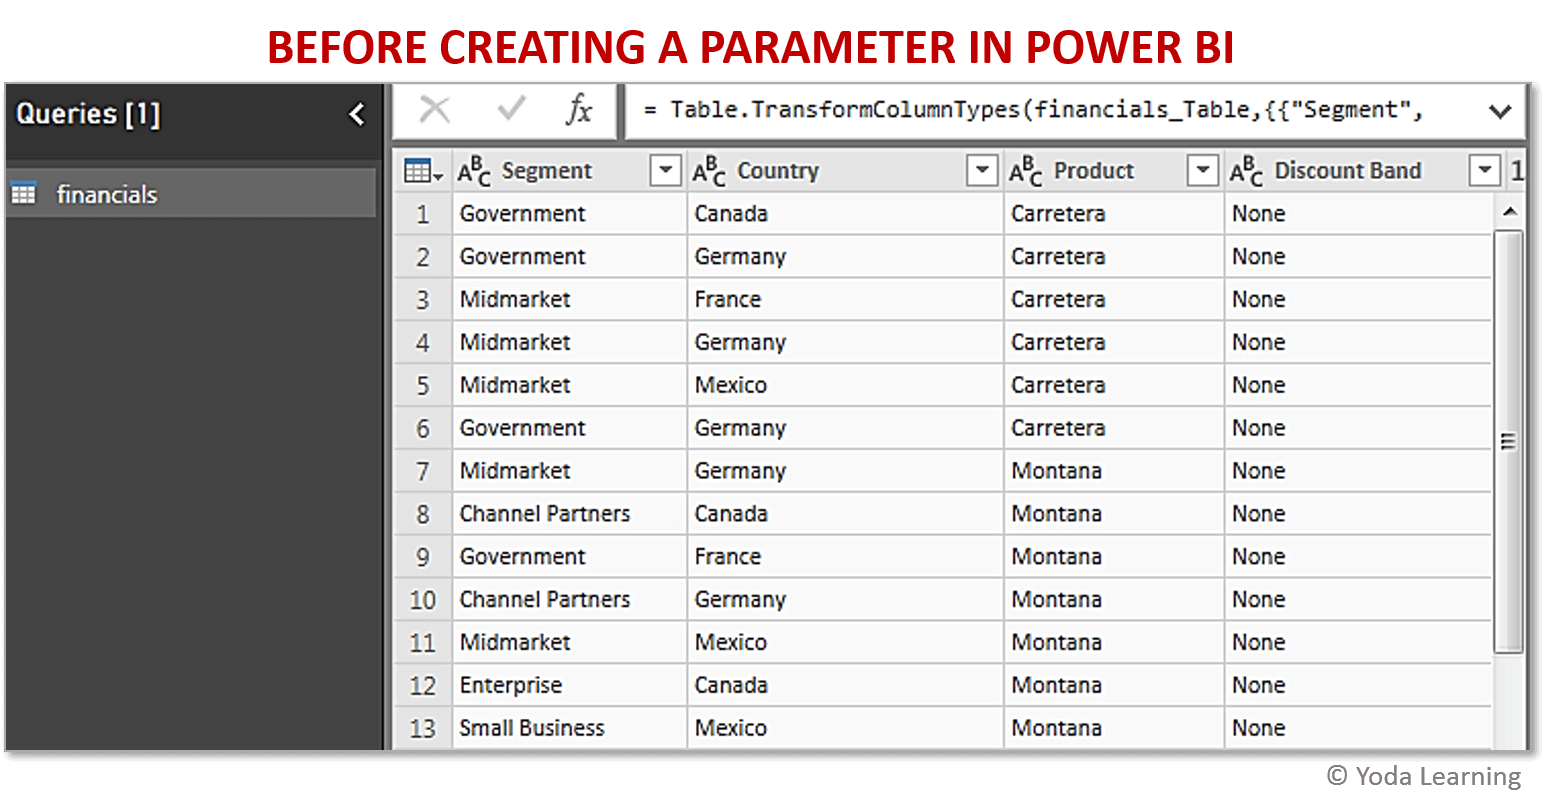 Before Creating a Parameter in Power BI